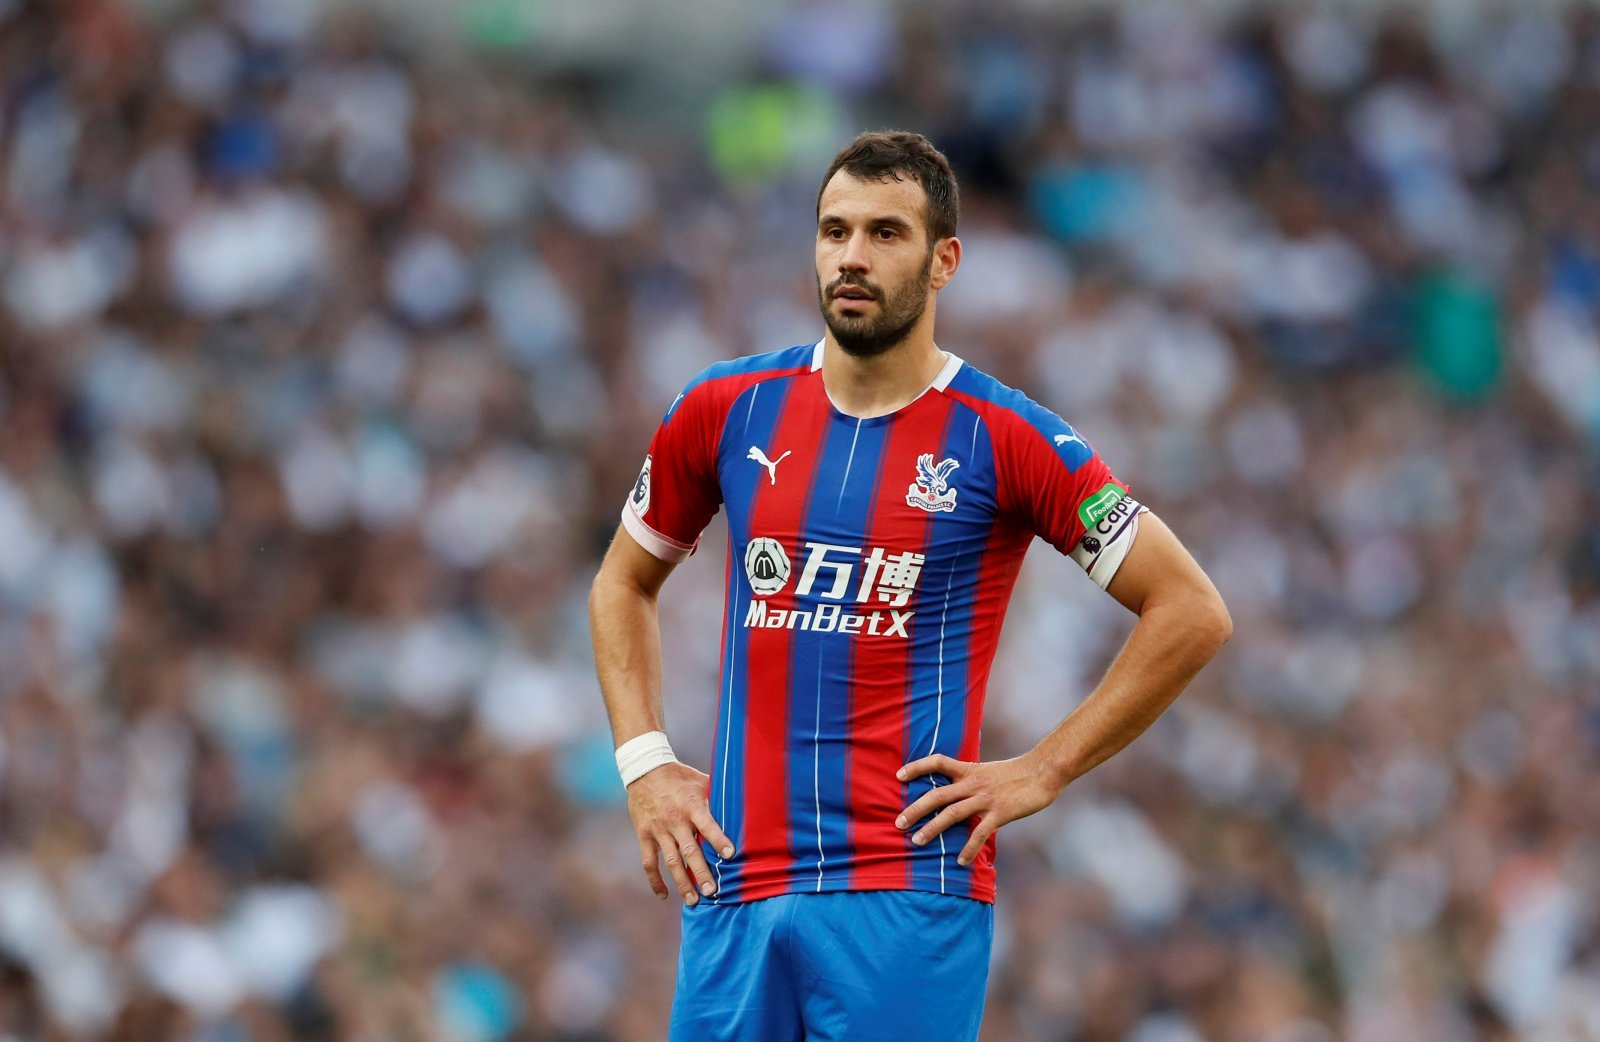 Manchester United: Fans joke about potentially buying Crystal Palace's Luka Milivojevic